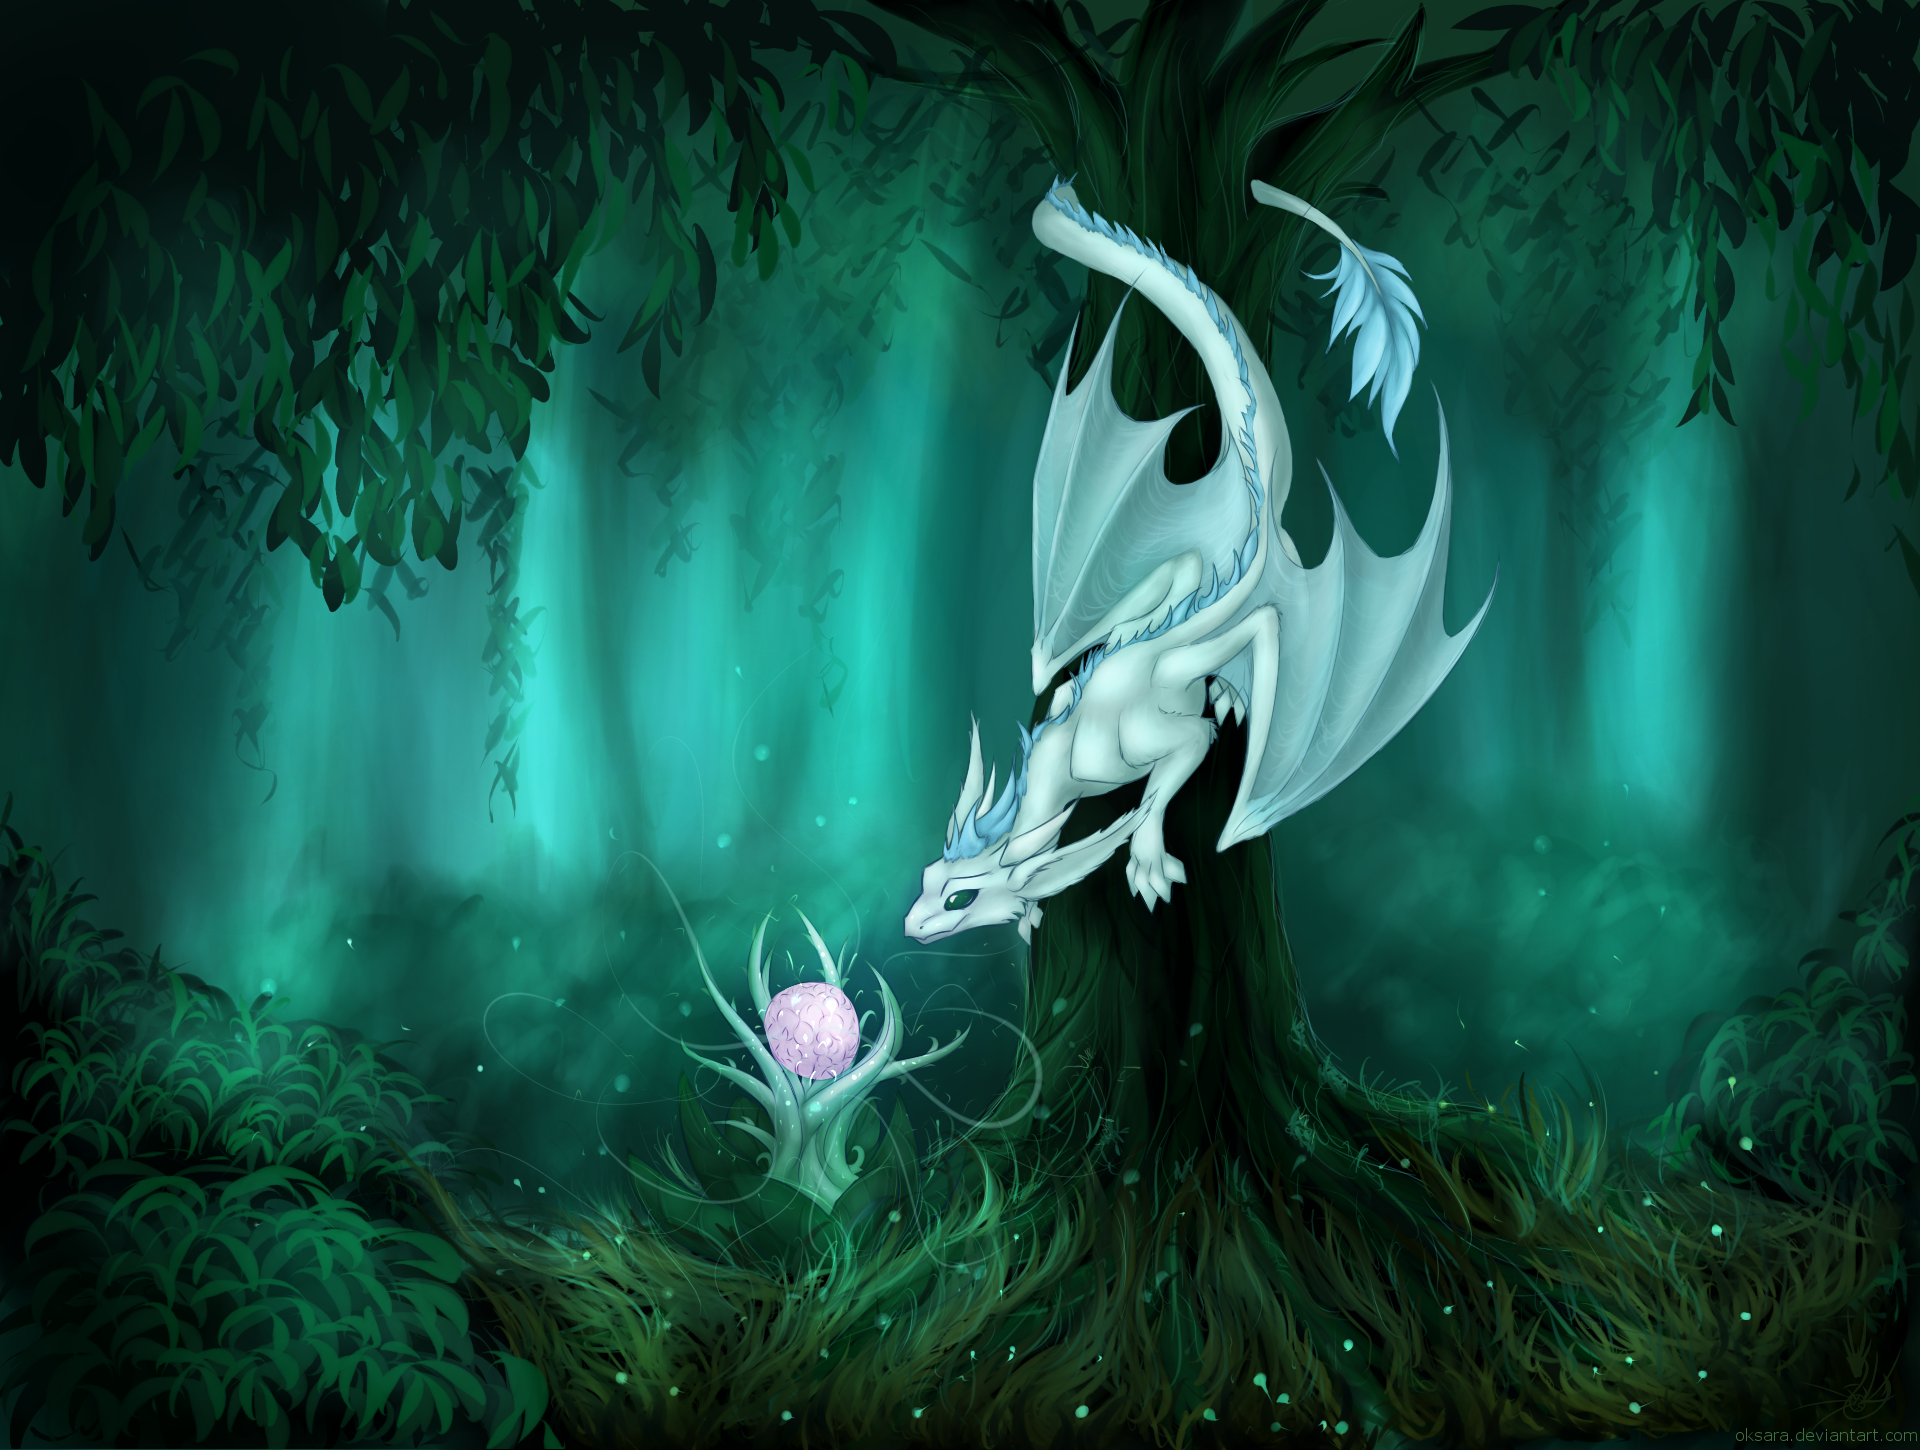 Ori and the Blind Forest by Oksara on DeviantArt